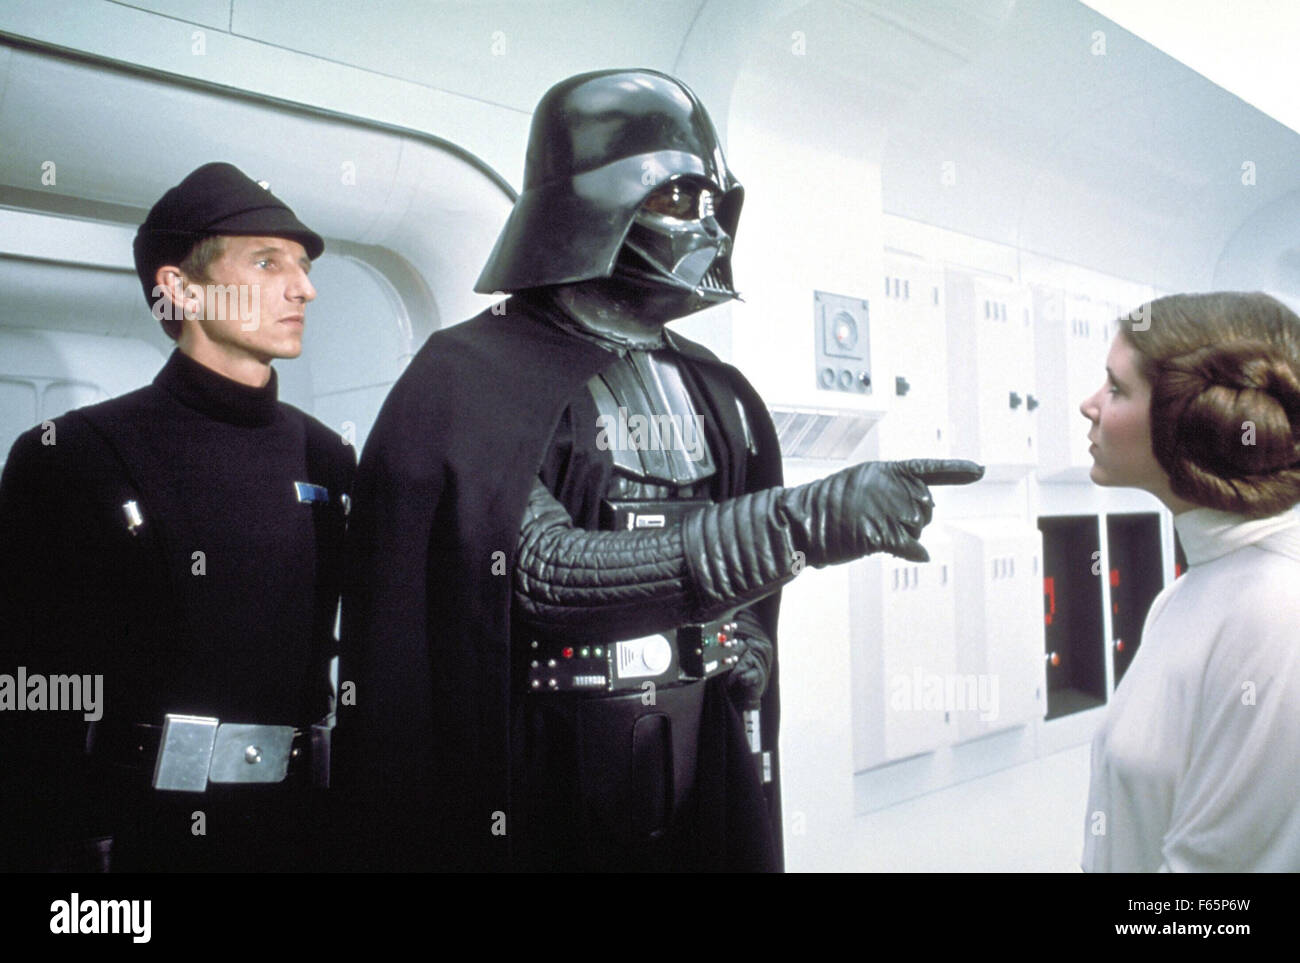 Star Wars: Episode IV - A New Hope Year : 1977 USA Director : George Lucas Kenneth Colley, David Prowse, Carrie - Stock Image